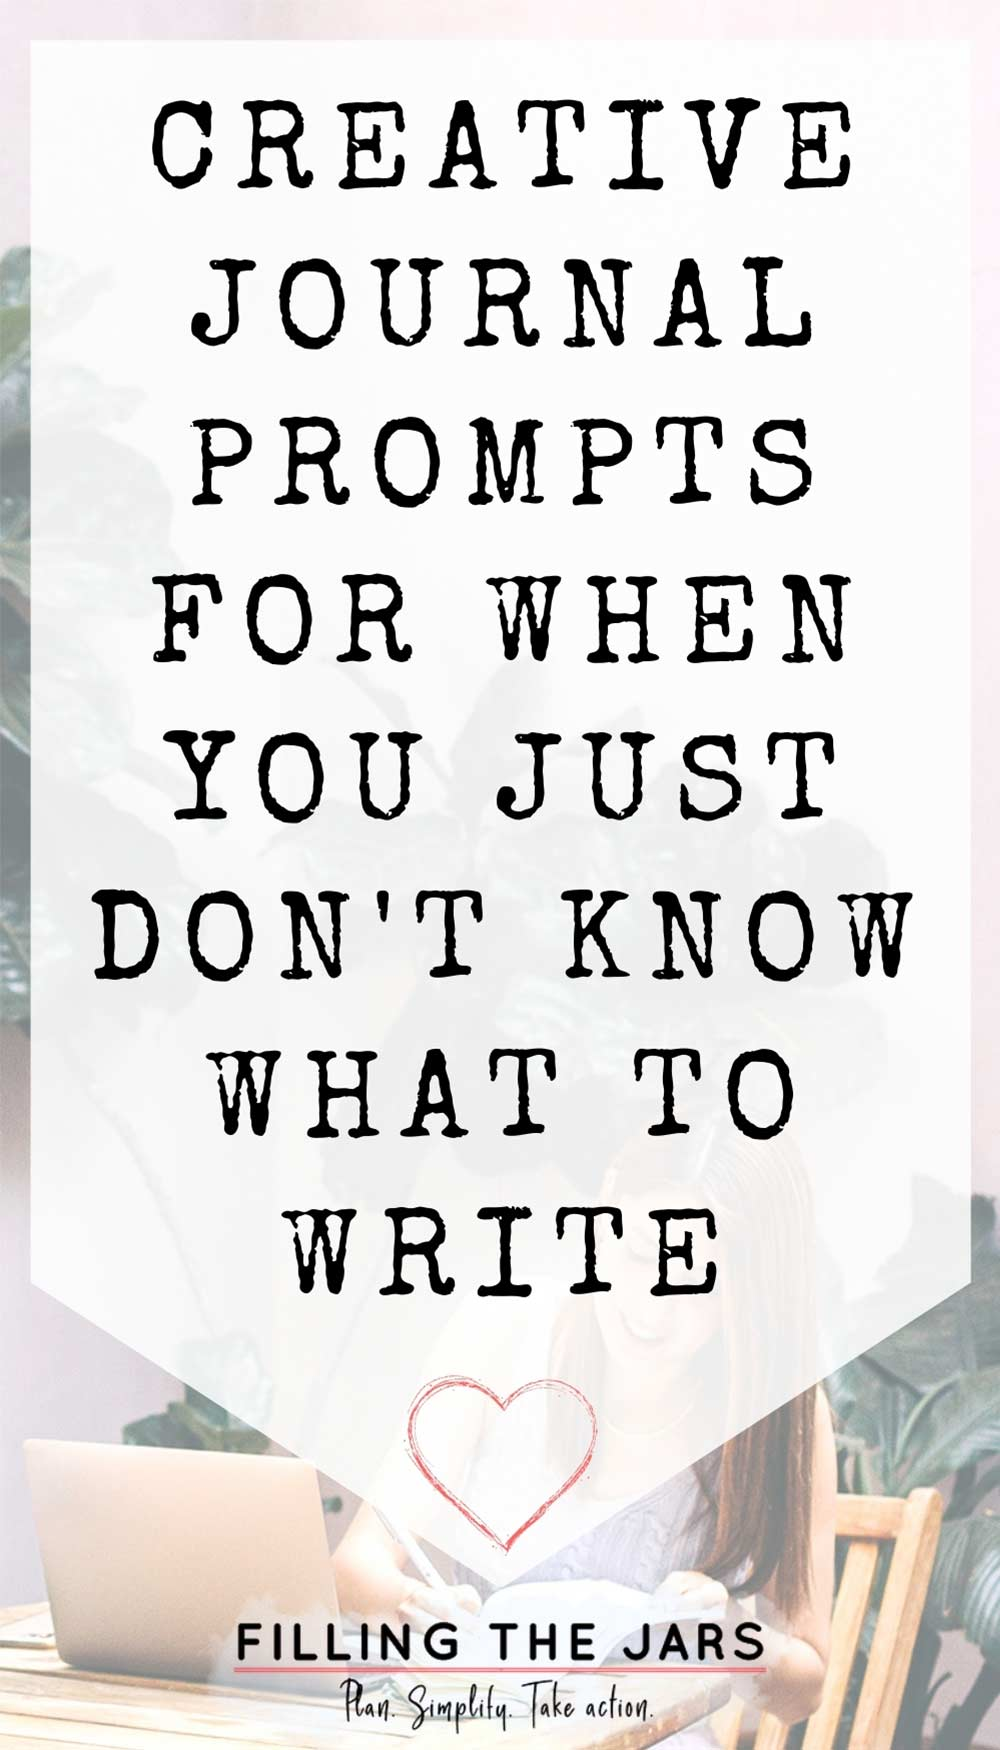 Text creative journal prompts for when you just don't know what to write on white background over image of woman sitting at wood folding table and writing.